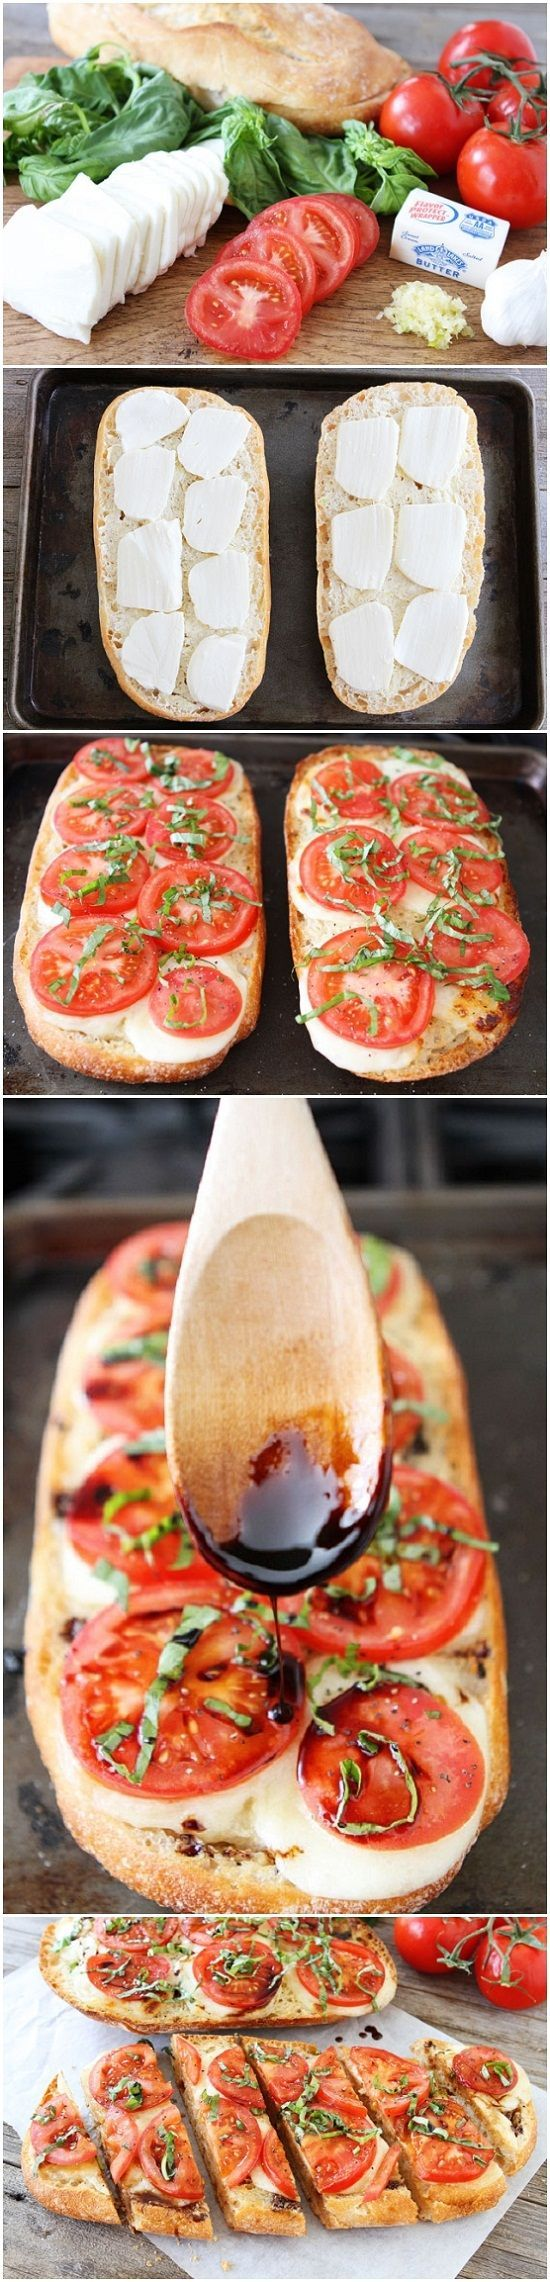 Caprese Garlic Bread. #recipes looks delicious!! Why not pair with a glass of Ken Forrester Petit Chenin Blanc!! www.kenforresterwines.com